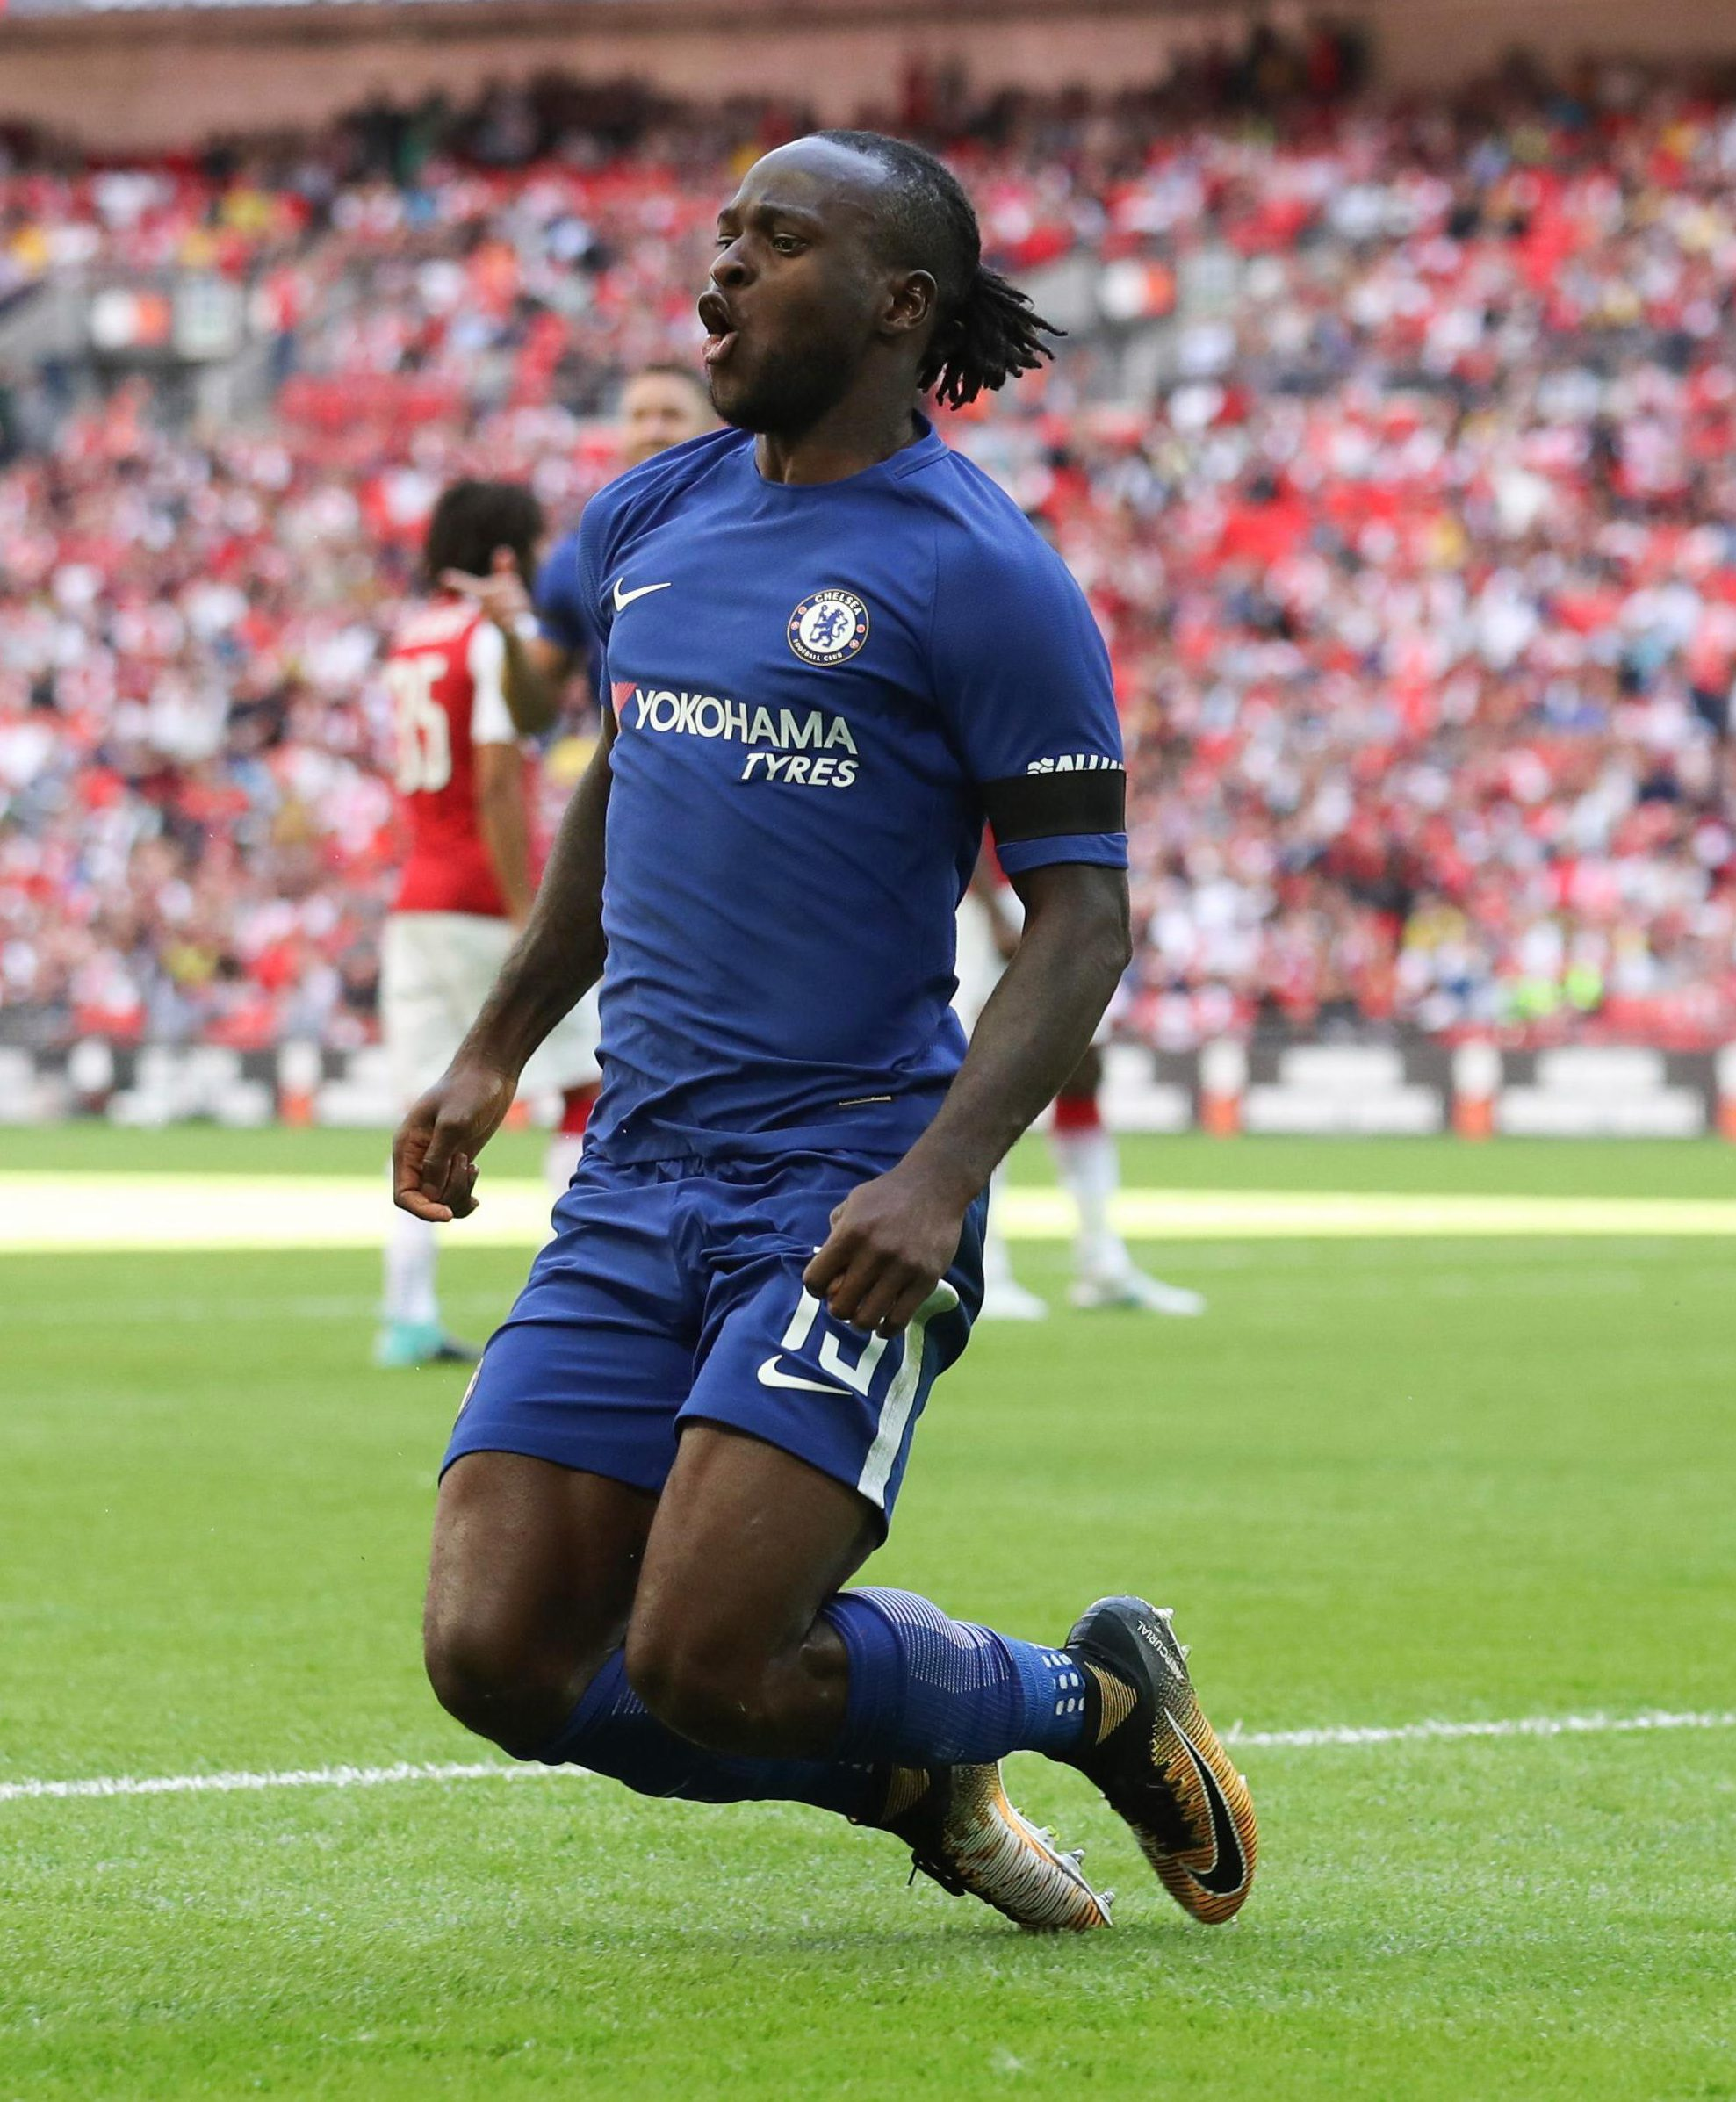 Victor Moses scored the opener